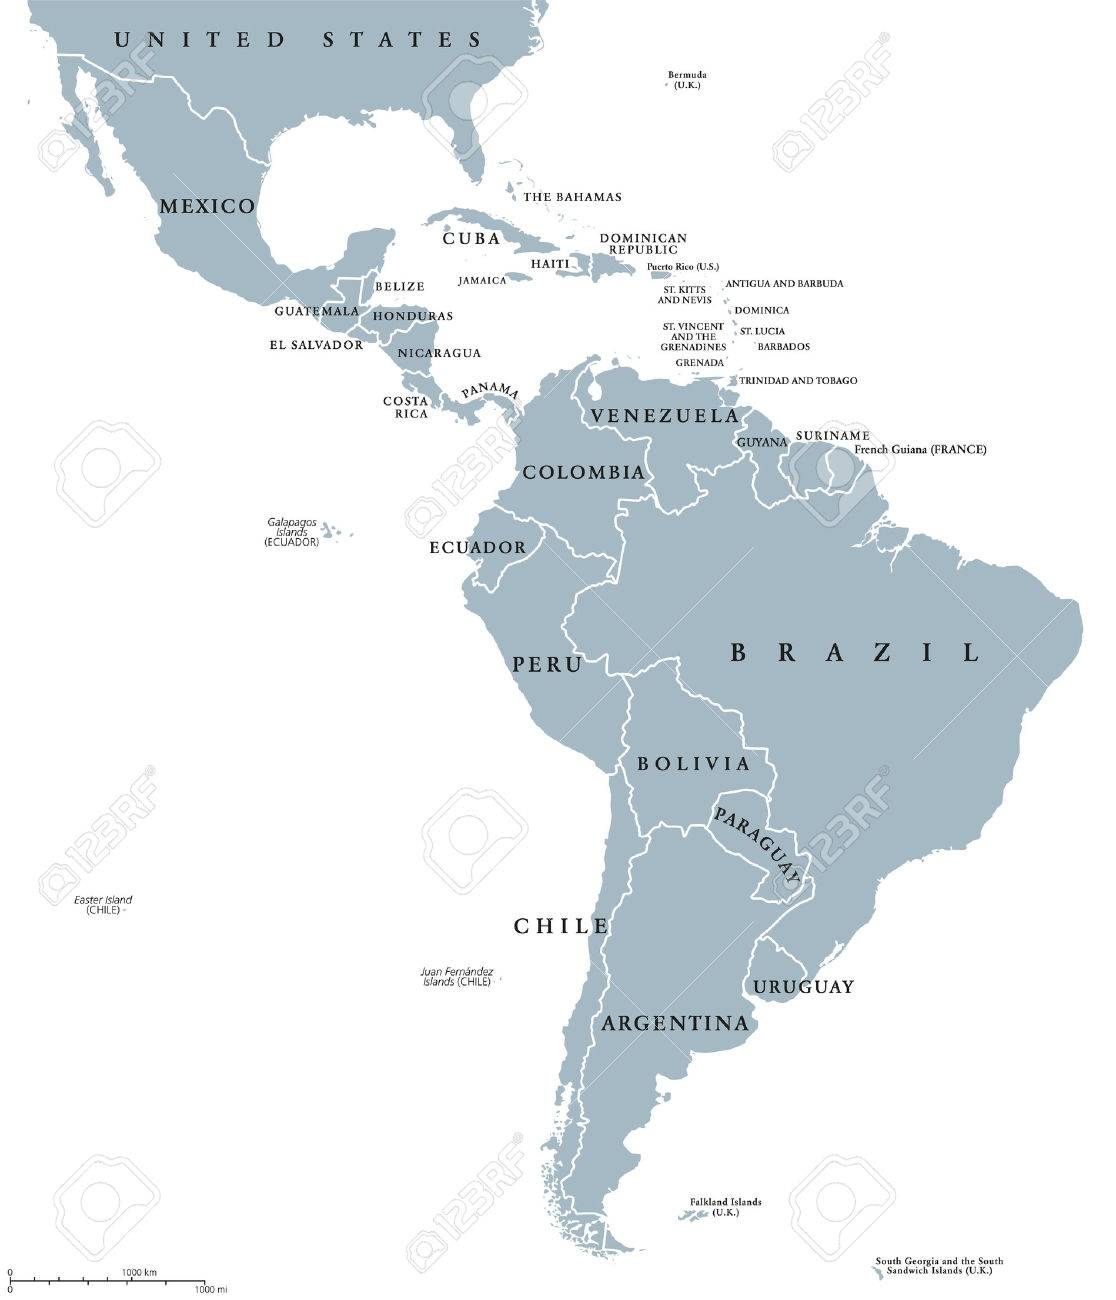 Latin America Countries Political Map With National Borders